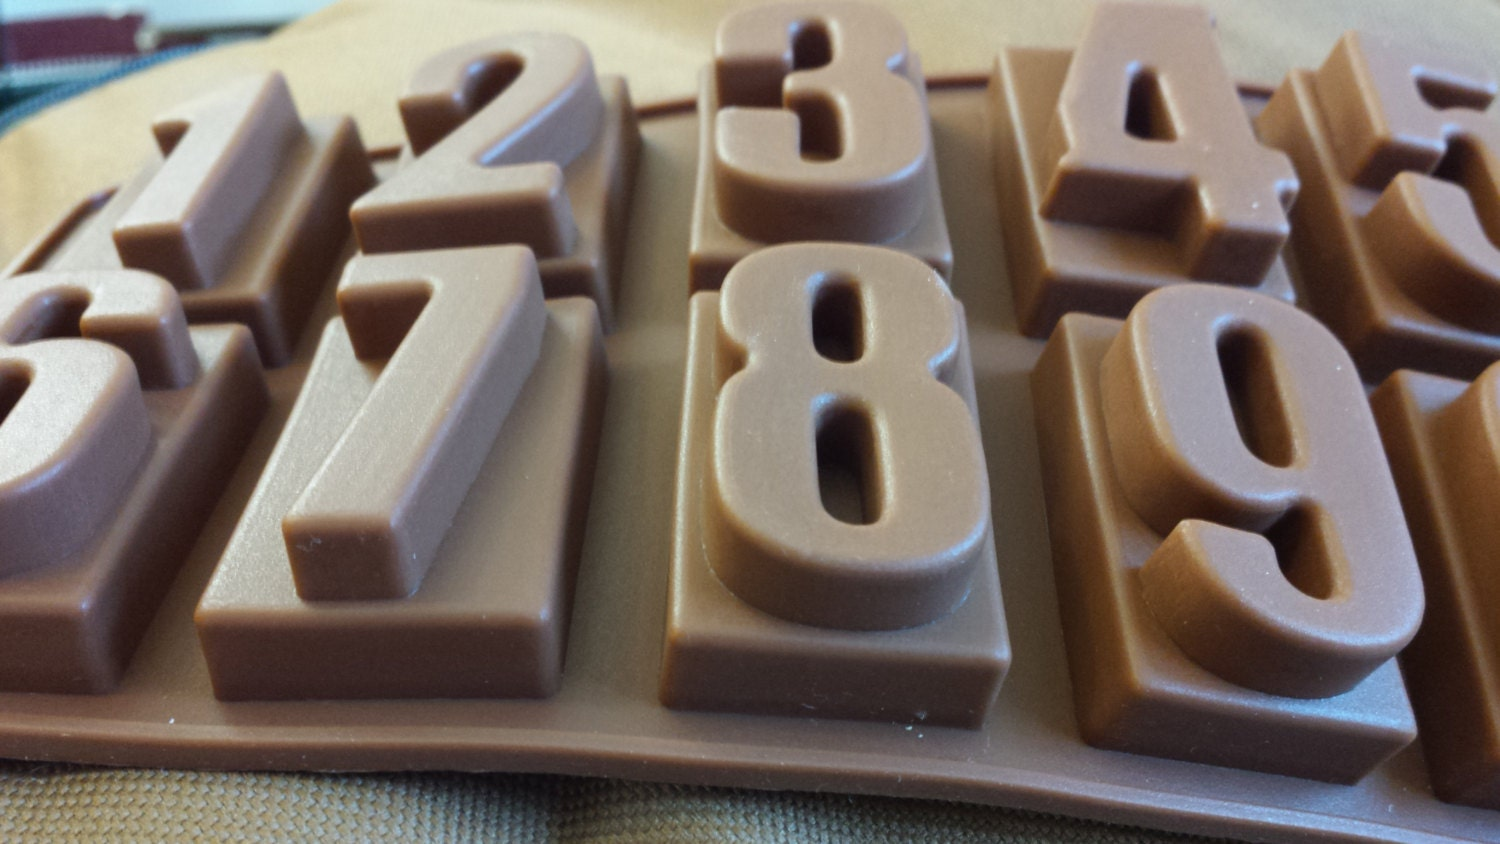 Number Mold Fondant Mold Chocolate Mold Gum Paste Mold